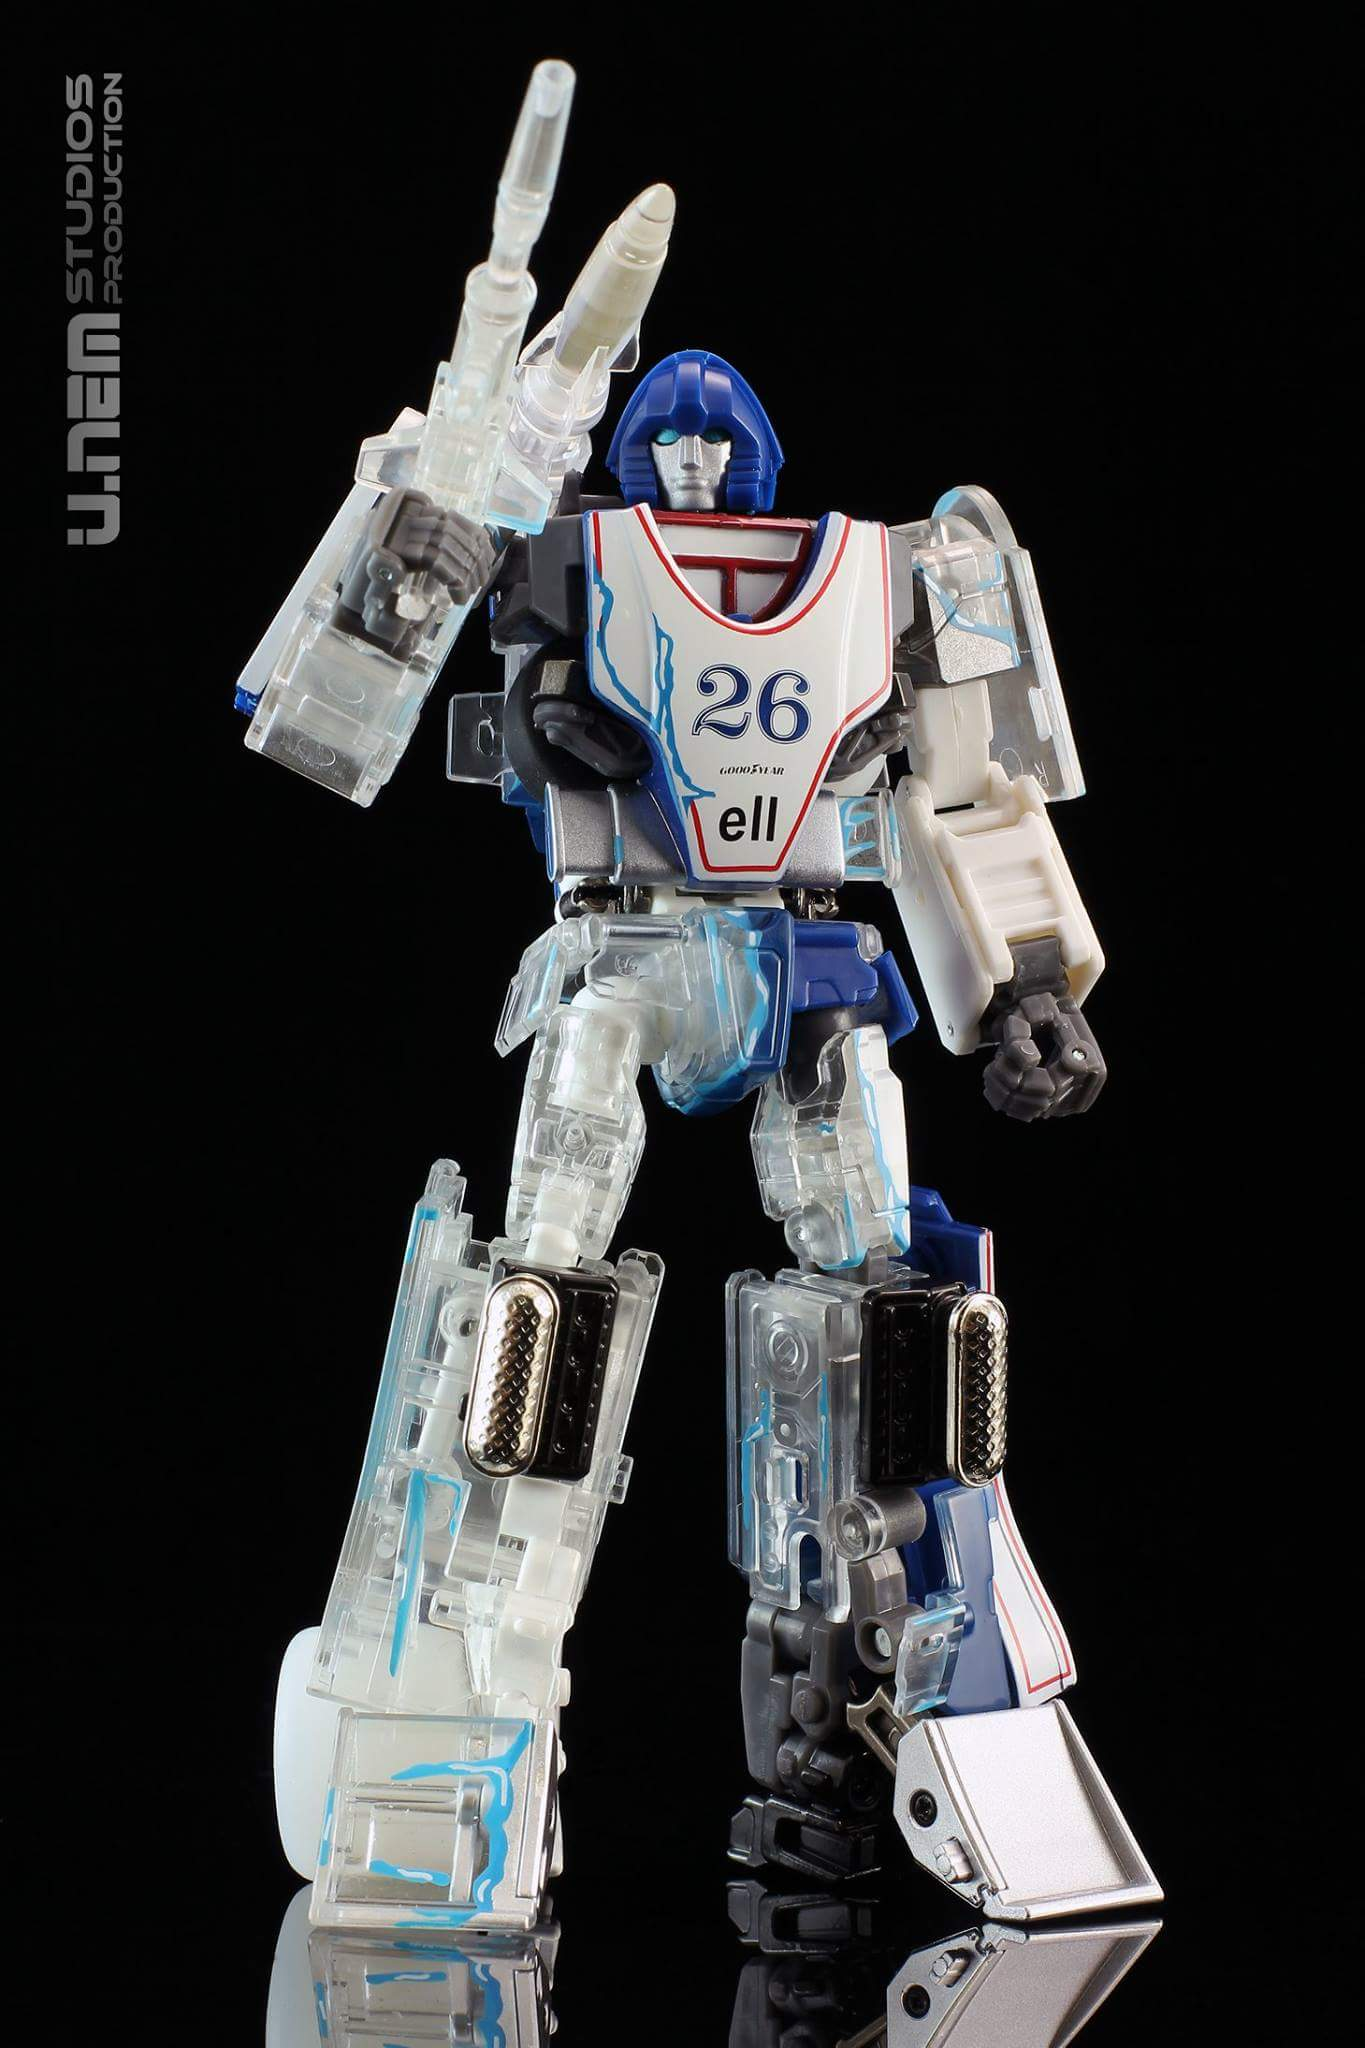 [Ocular Max] Produit Tiers - PS-01 Sphinx (aka Mirage G1) + PS-02 Liger (aka Mirage Diaclone) - Page 3 FwptUKve